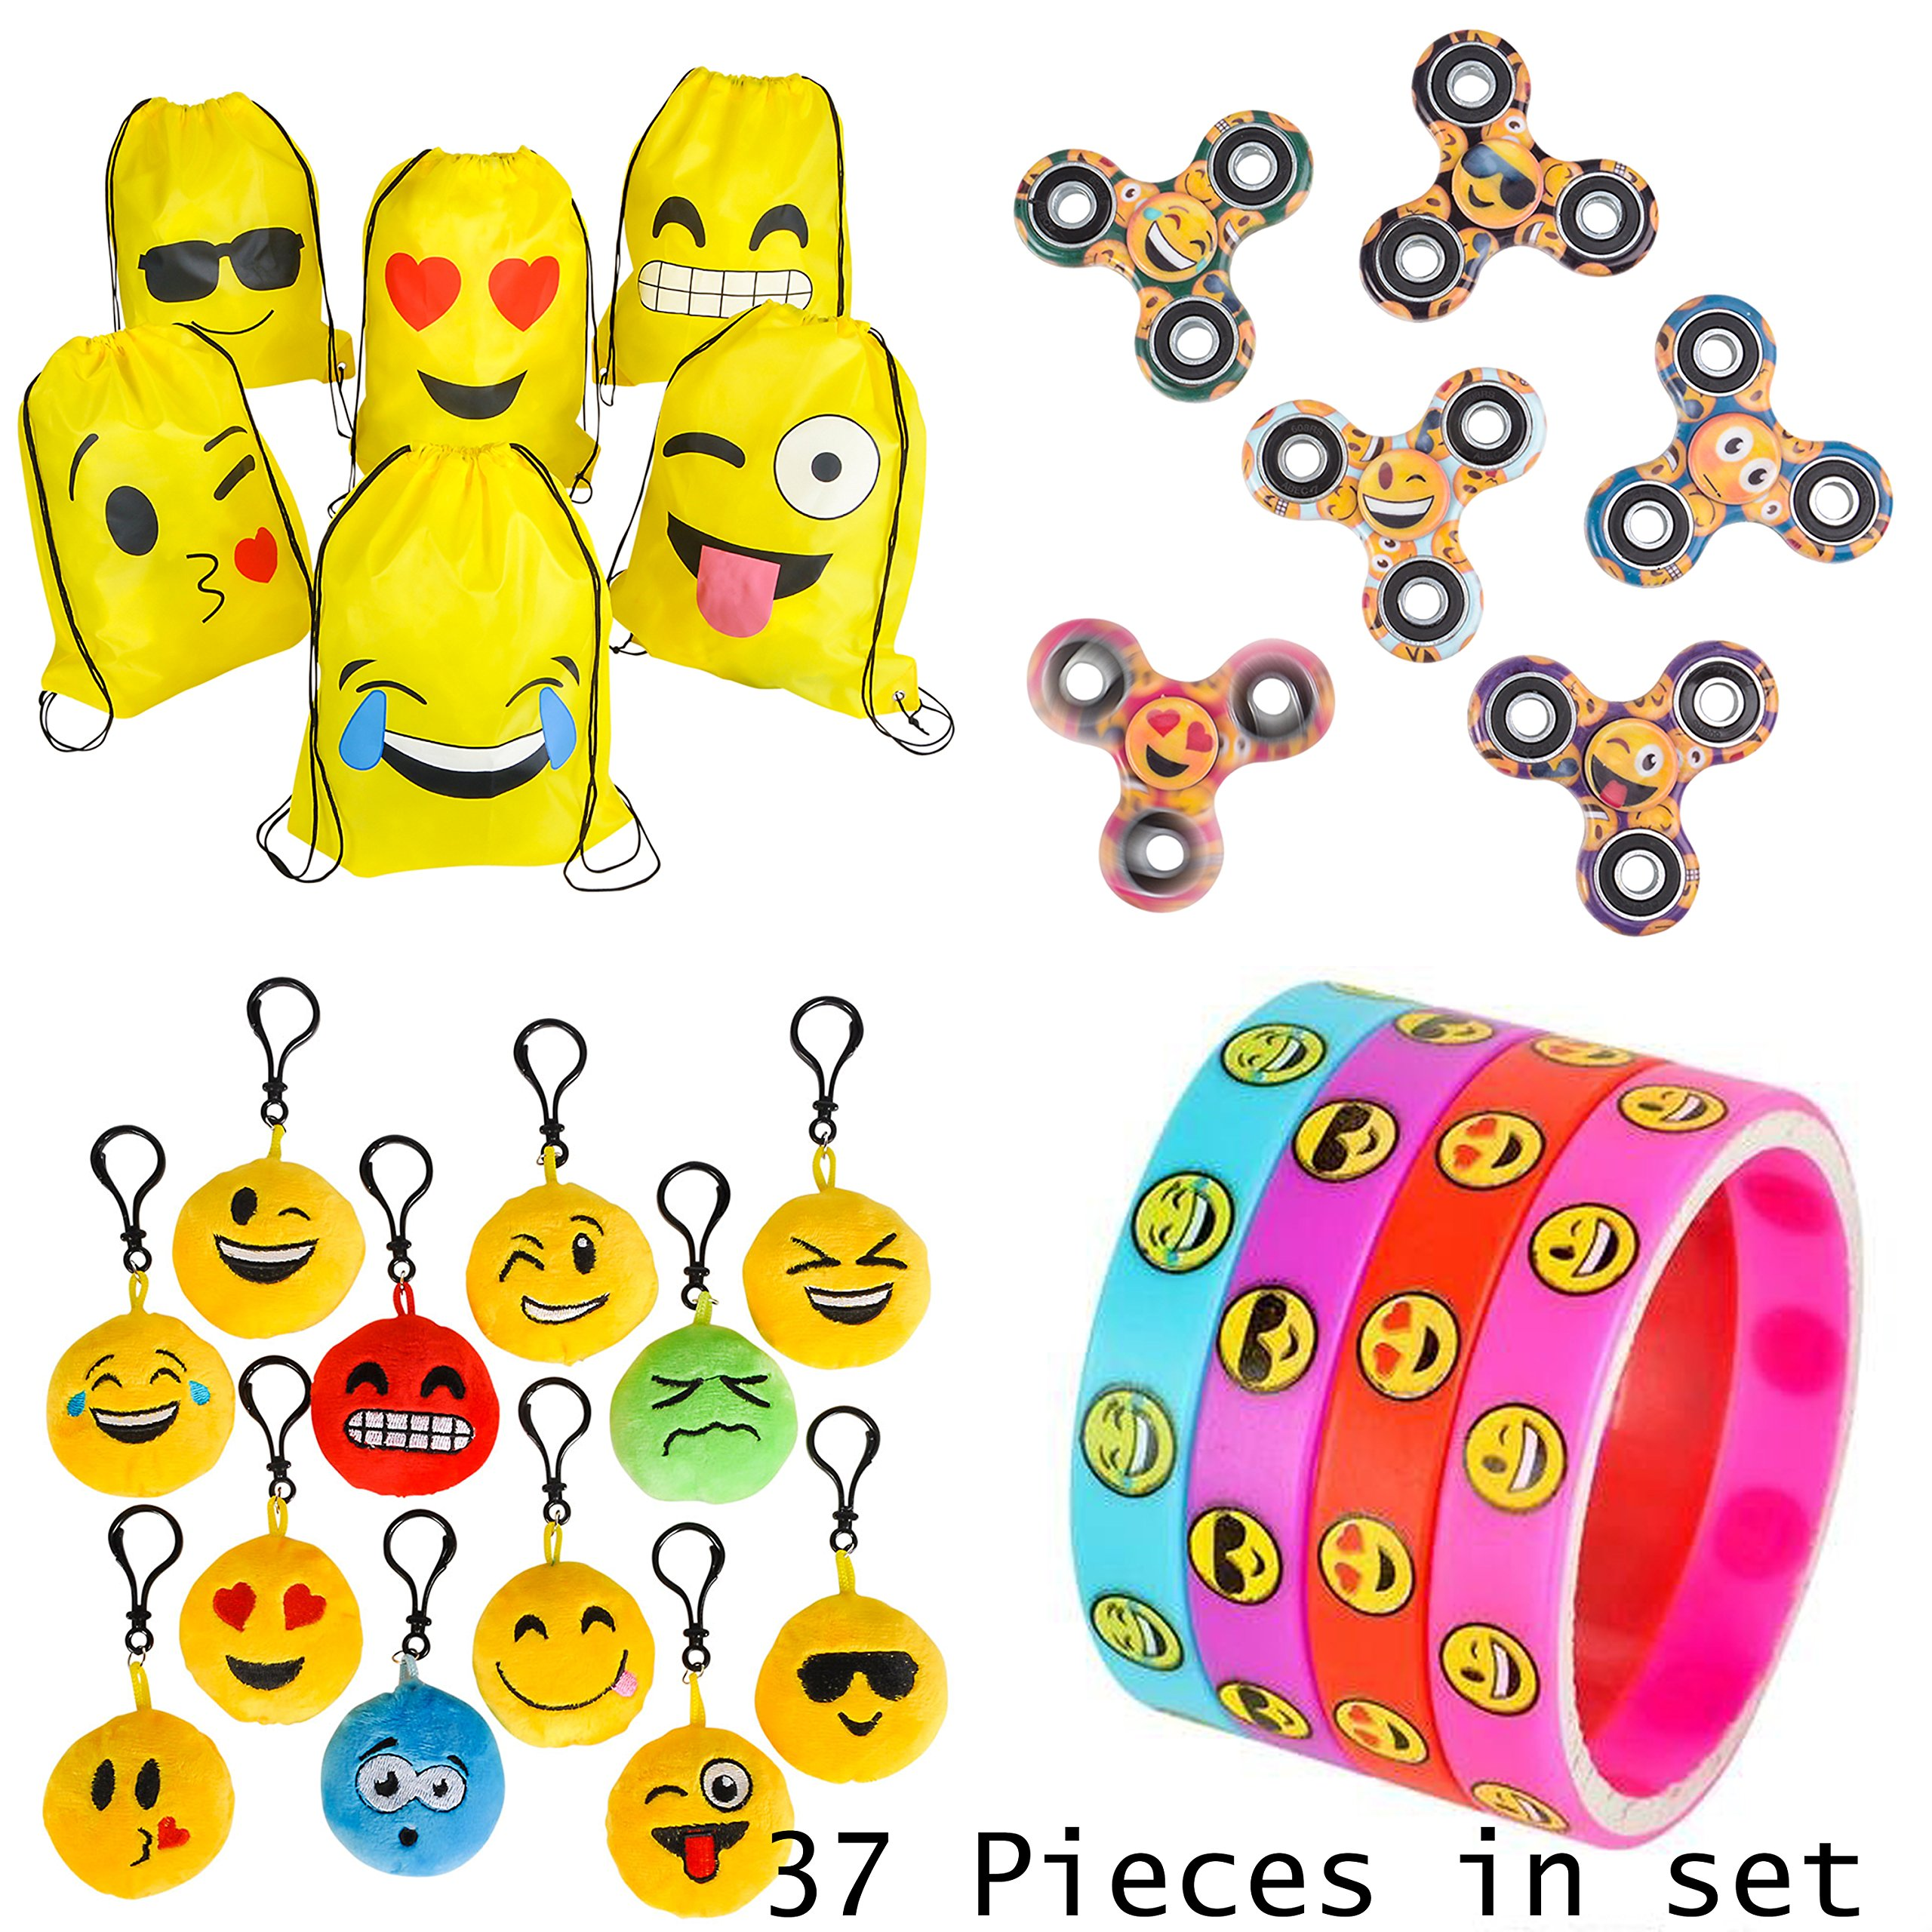 MSP Toys & Games Premium Emoji Party Supplies Bundle (36 Items incl. 6 Fidget Hand Spinners, 6 Backpacks, 12 Plush Backpack Clips, 12 Rubber Bracelets + 1 Bonus Item) by MSP Toys & Games